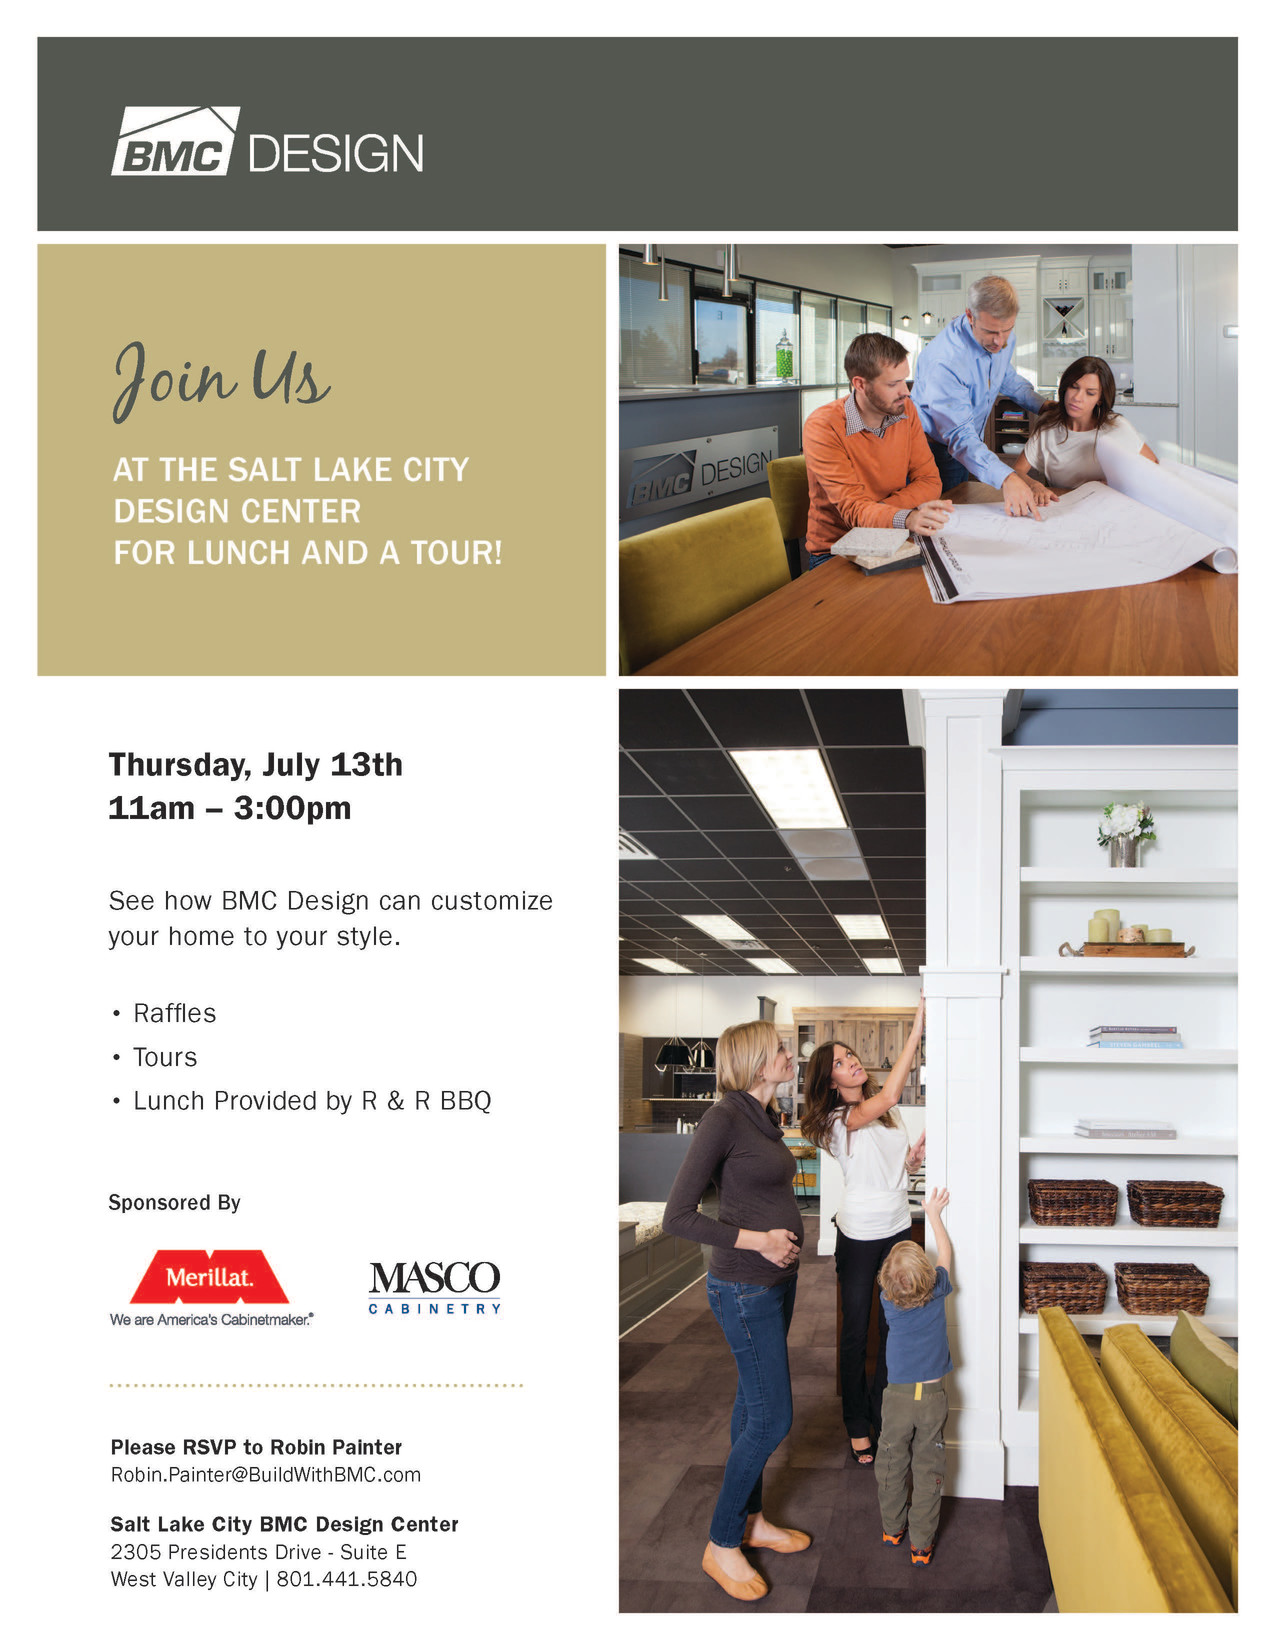 BMC-Design-SLC---Lunch_Tour-Invite.jpg